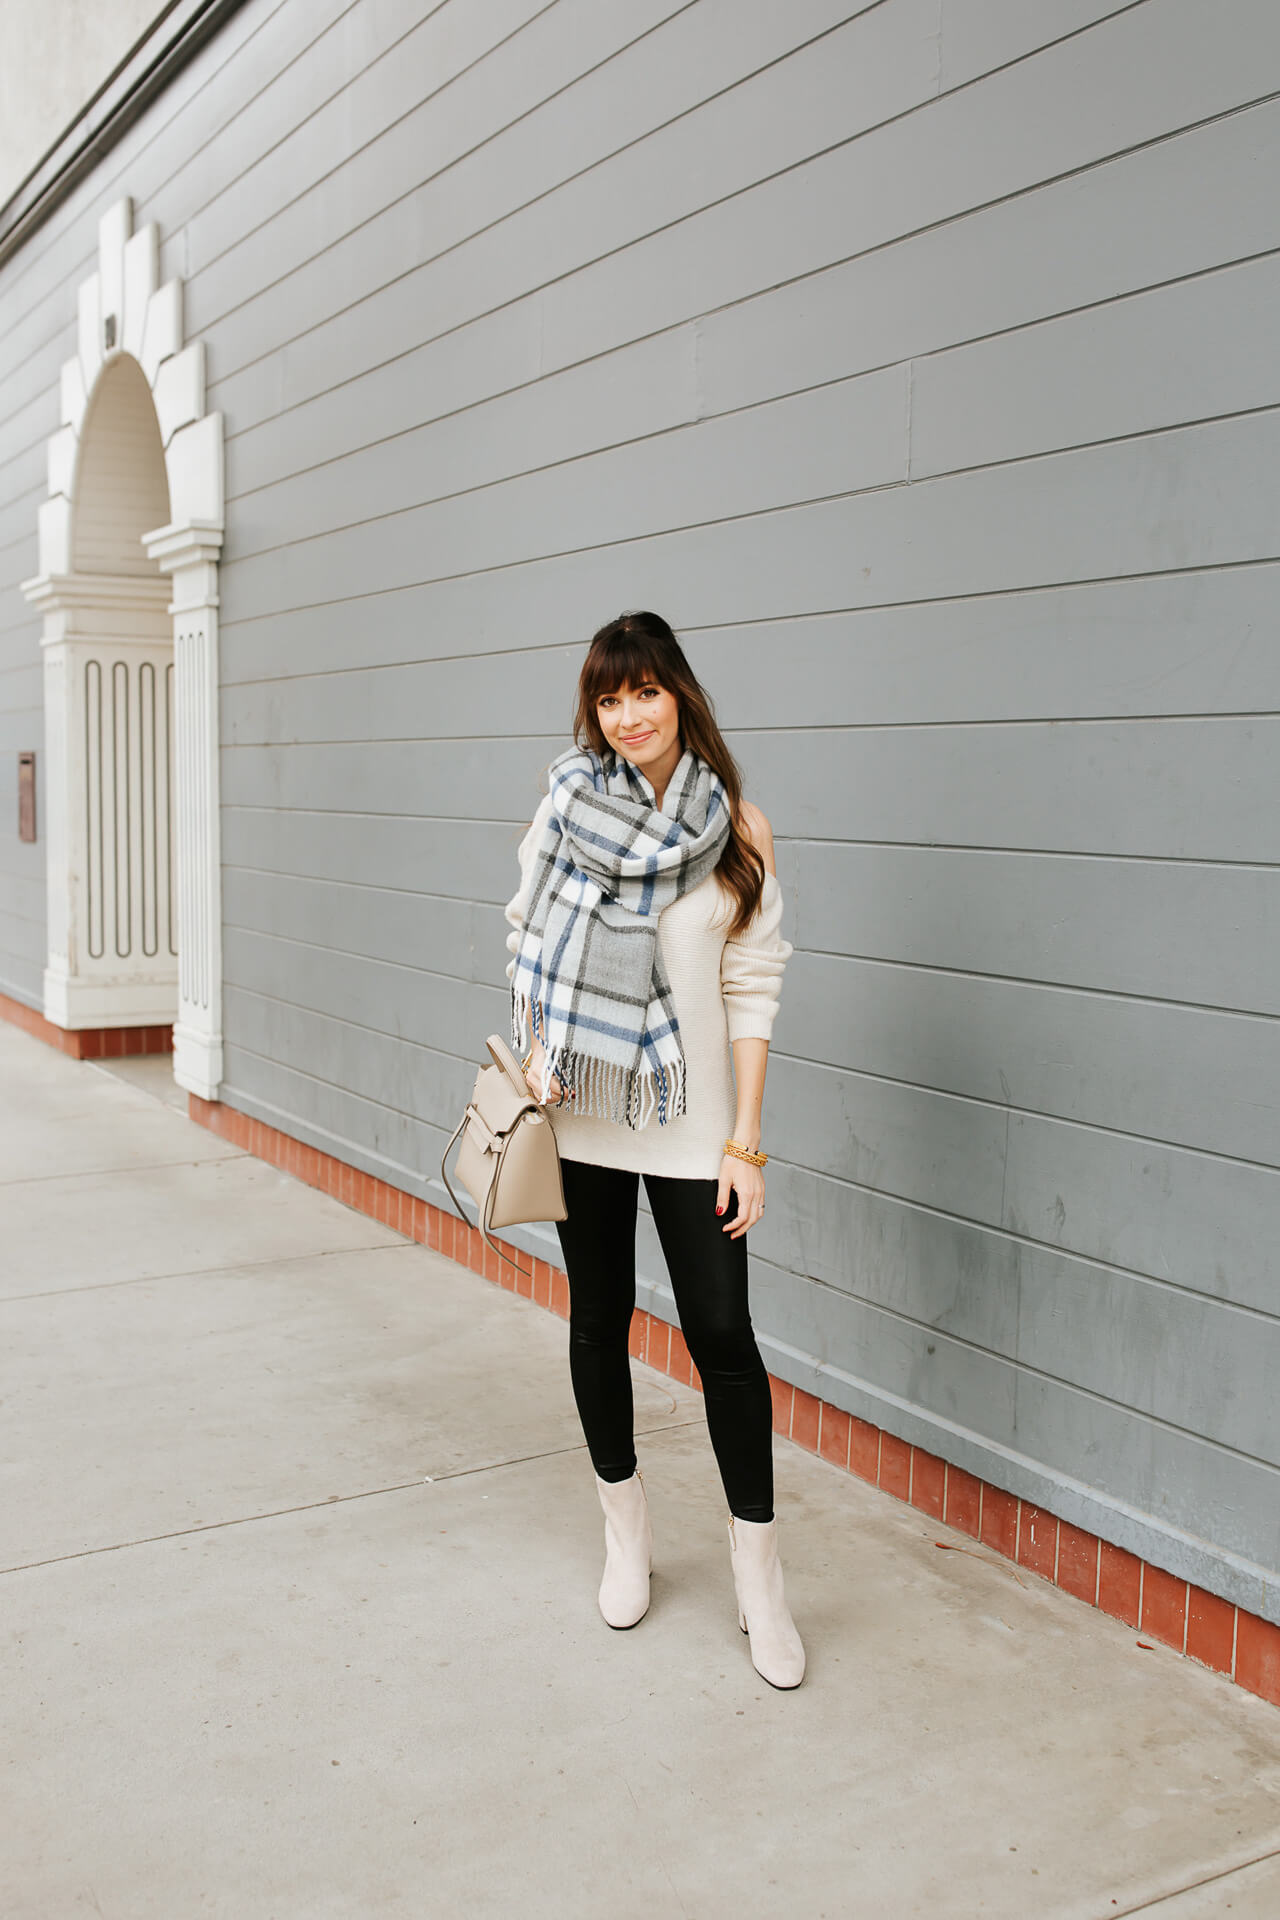 Cozy fall style outfit inspiration! - M Loves M @marmar